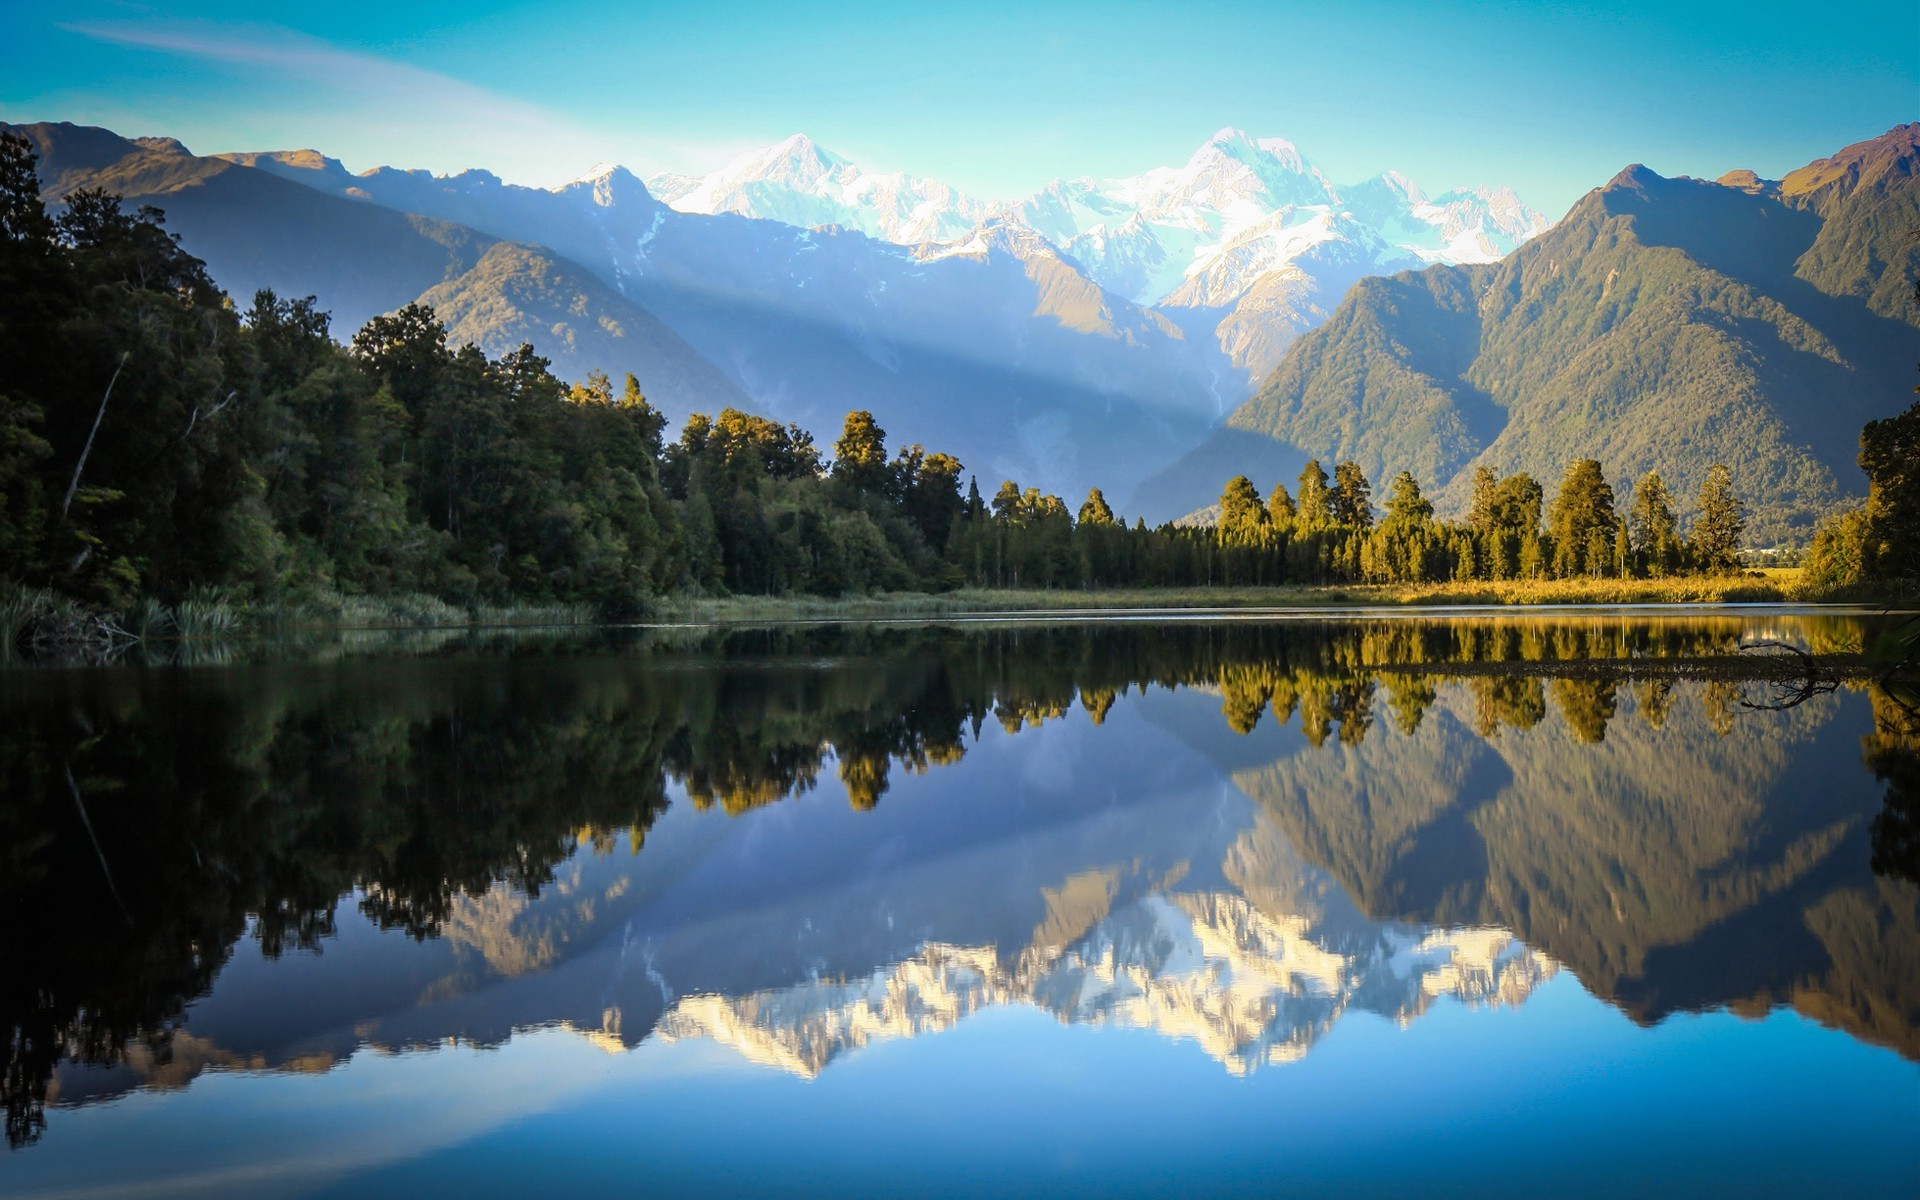 Lotr Fall Wallpaper Mountains River Reflections Nature Landscape